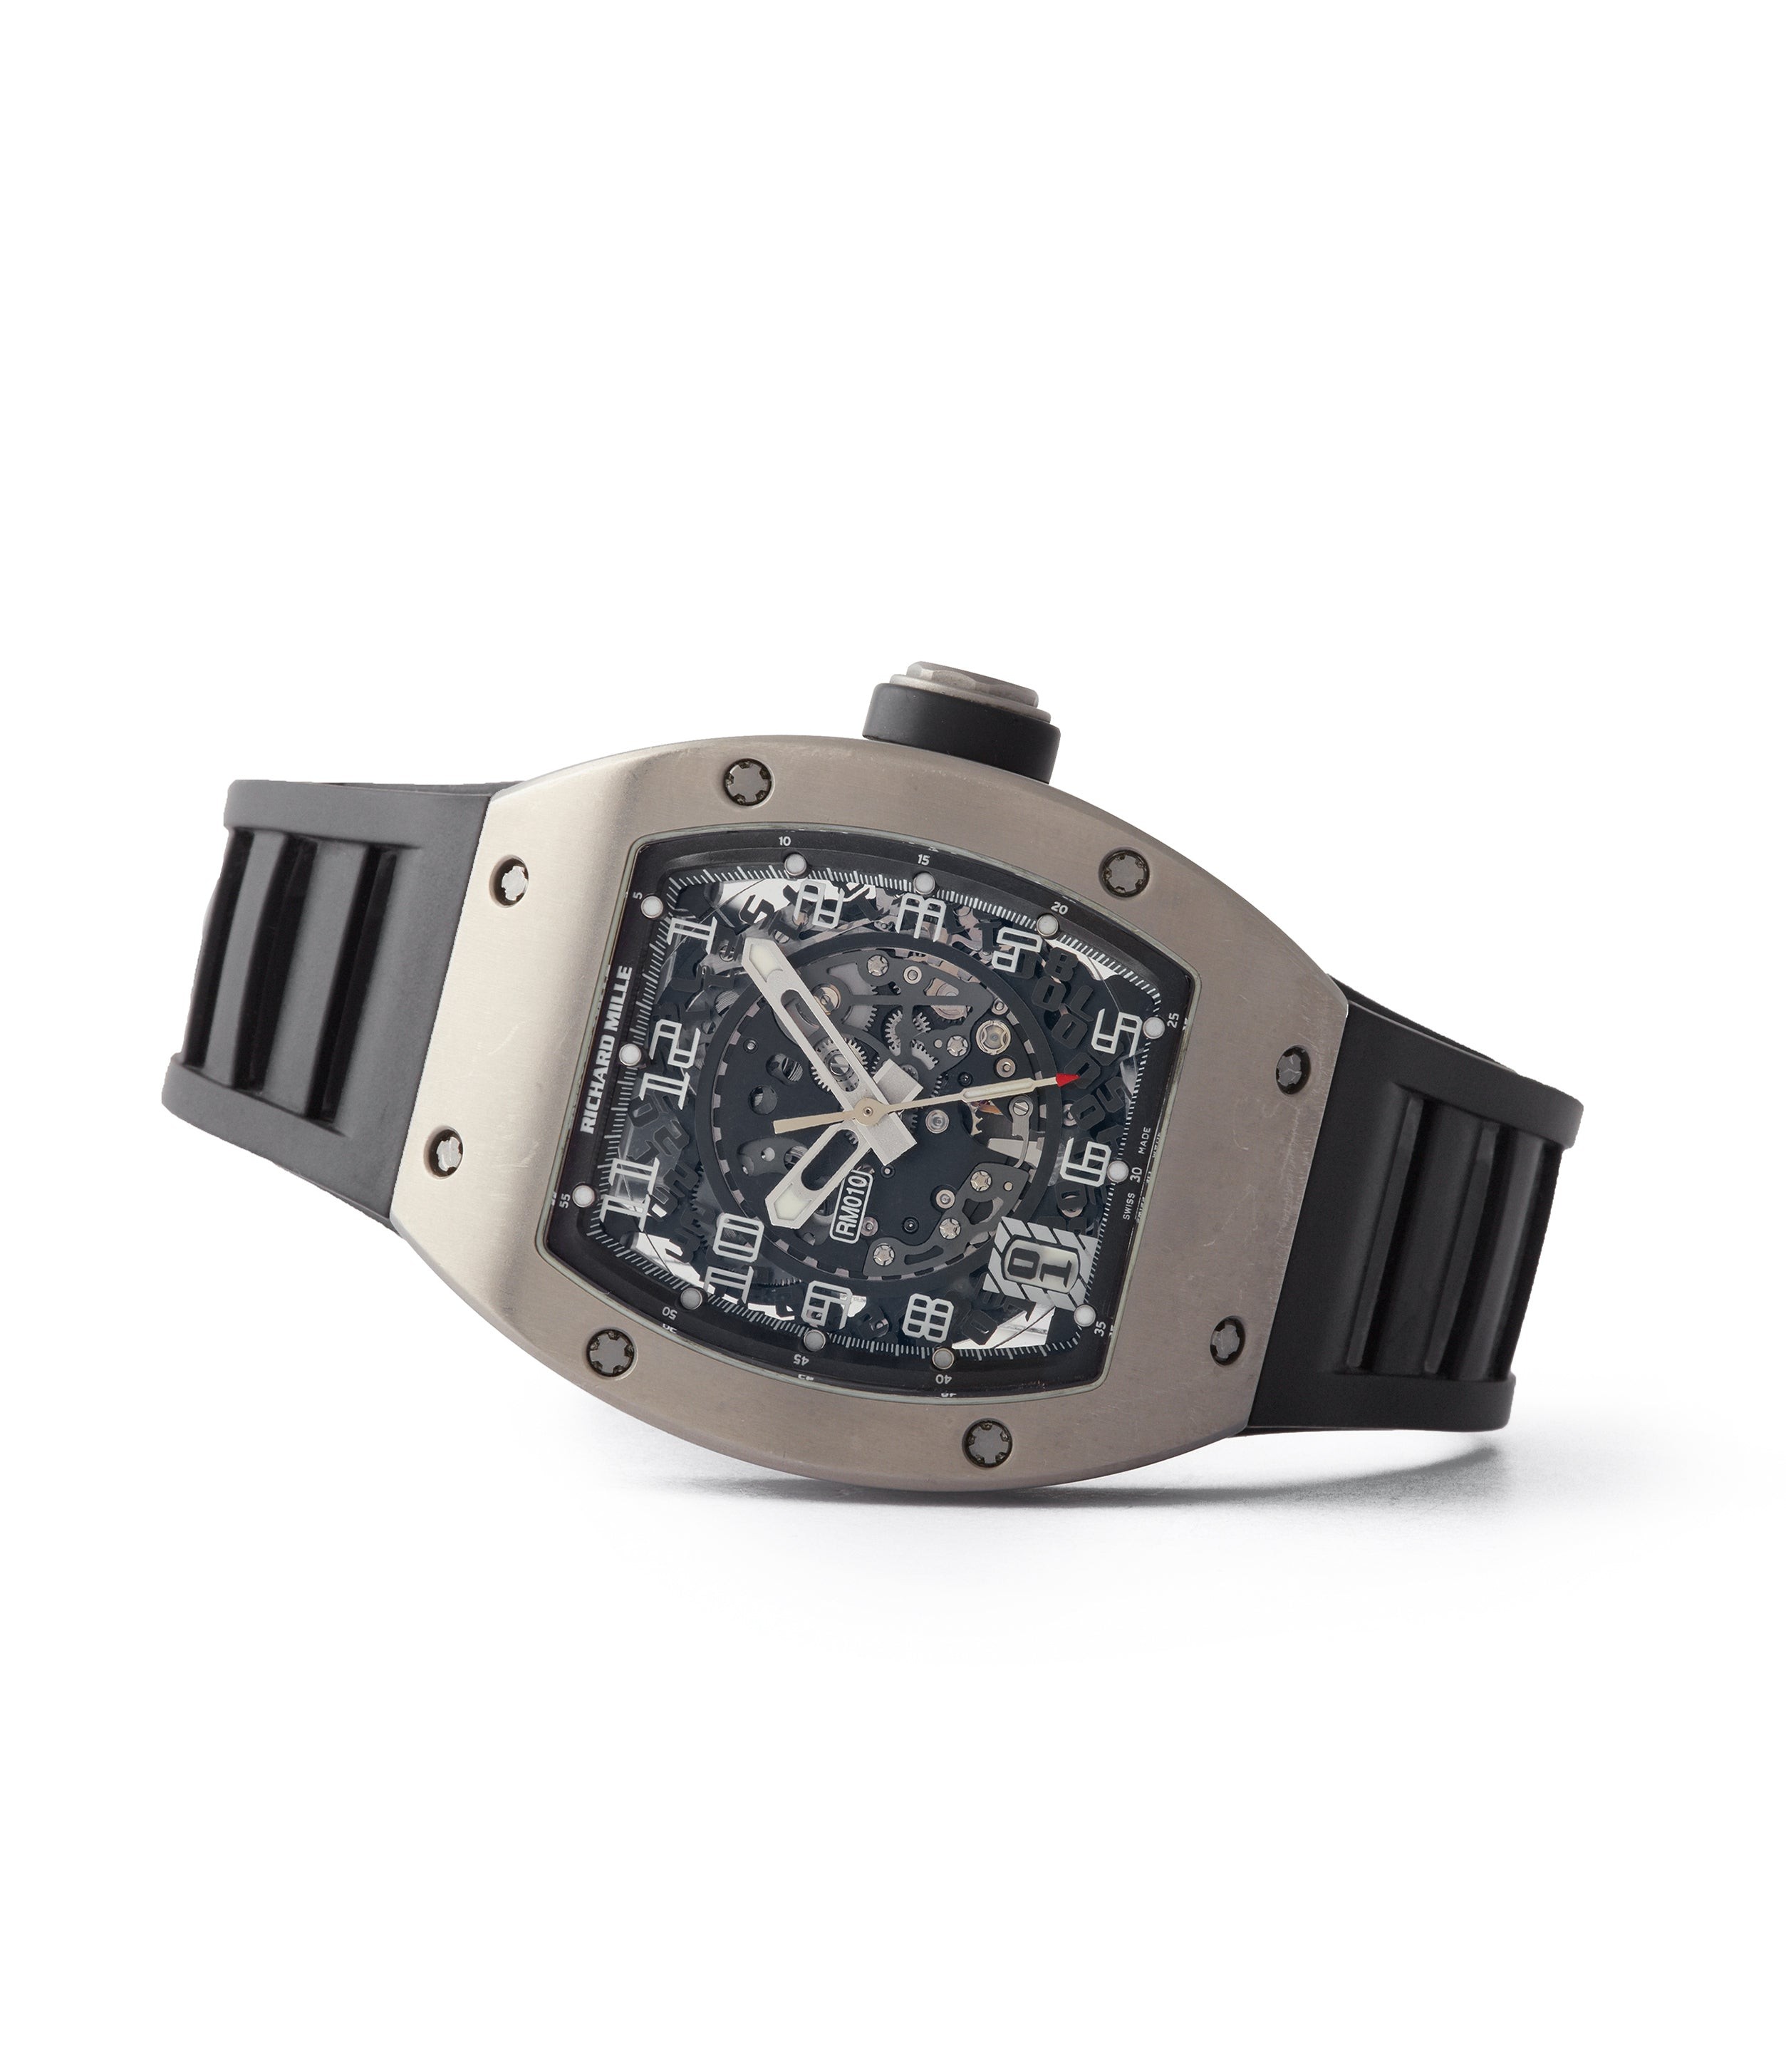 RM010 pre-owned Richard Mille RM 010TI titanium men's sports luxury wristwatch for sale online A Collected Man London UK specialist rare independent watchmakers